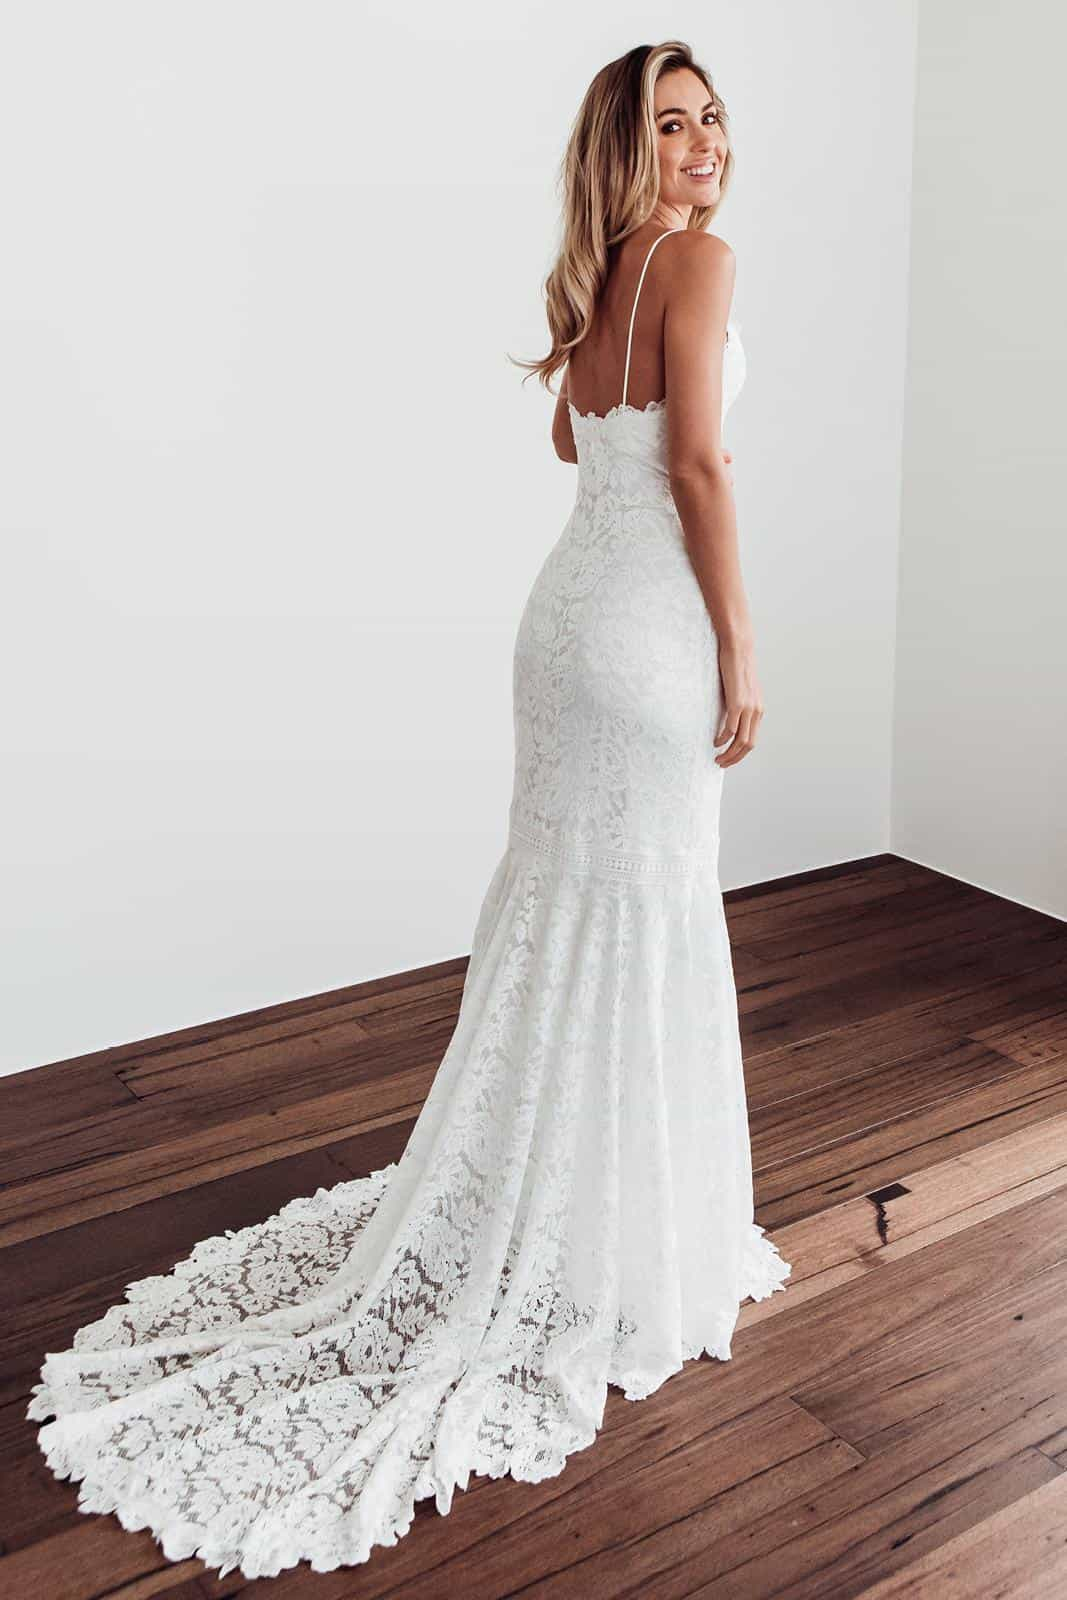 Boho Wedding Dresses Inspiration French Lace Dress Handmade by Grace Loves Lace Hart